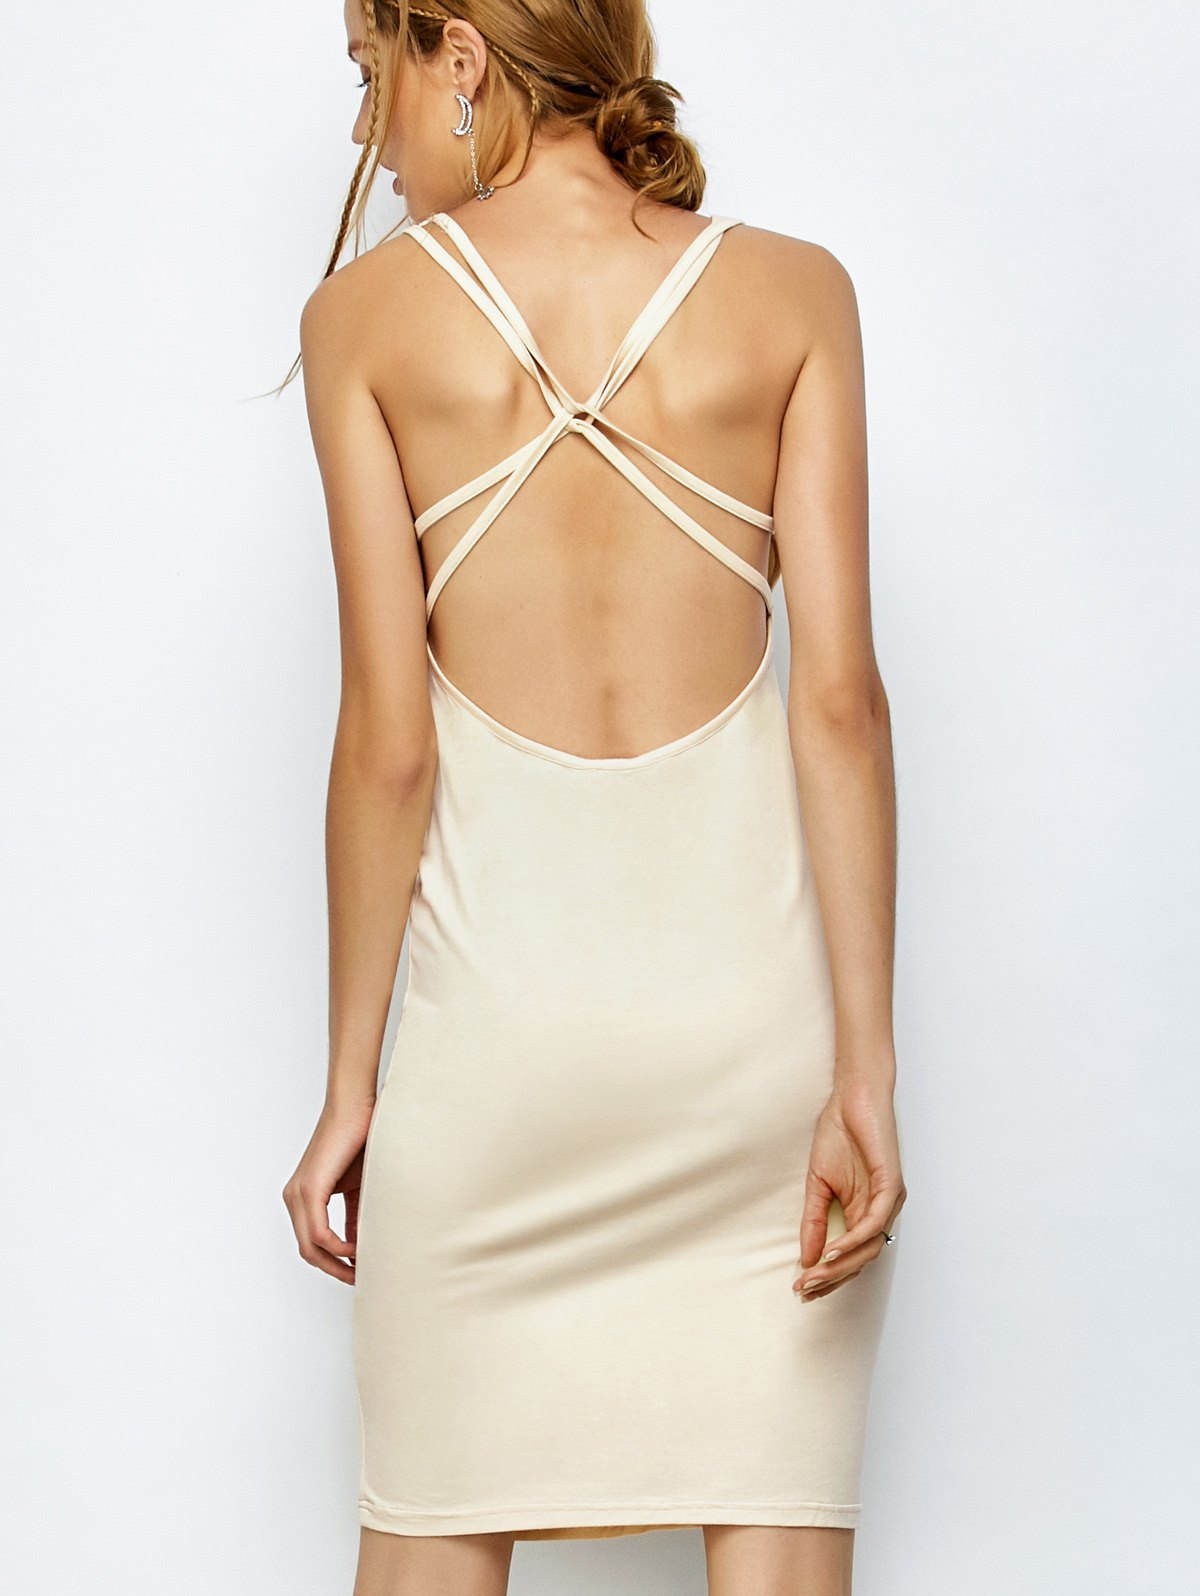 Strappy Backless Bodycon DressClothes<br><br><br>Size: 2XL<br>Color: APRICOT